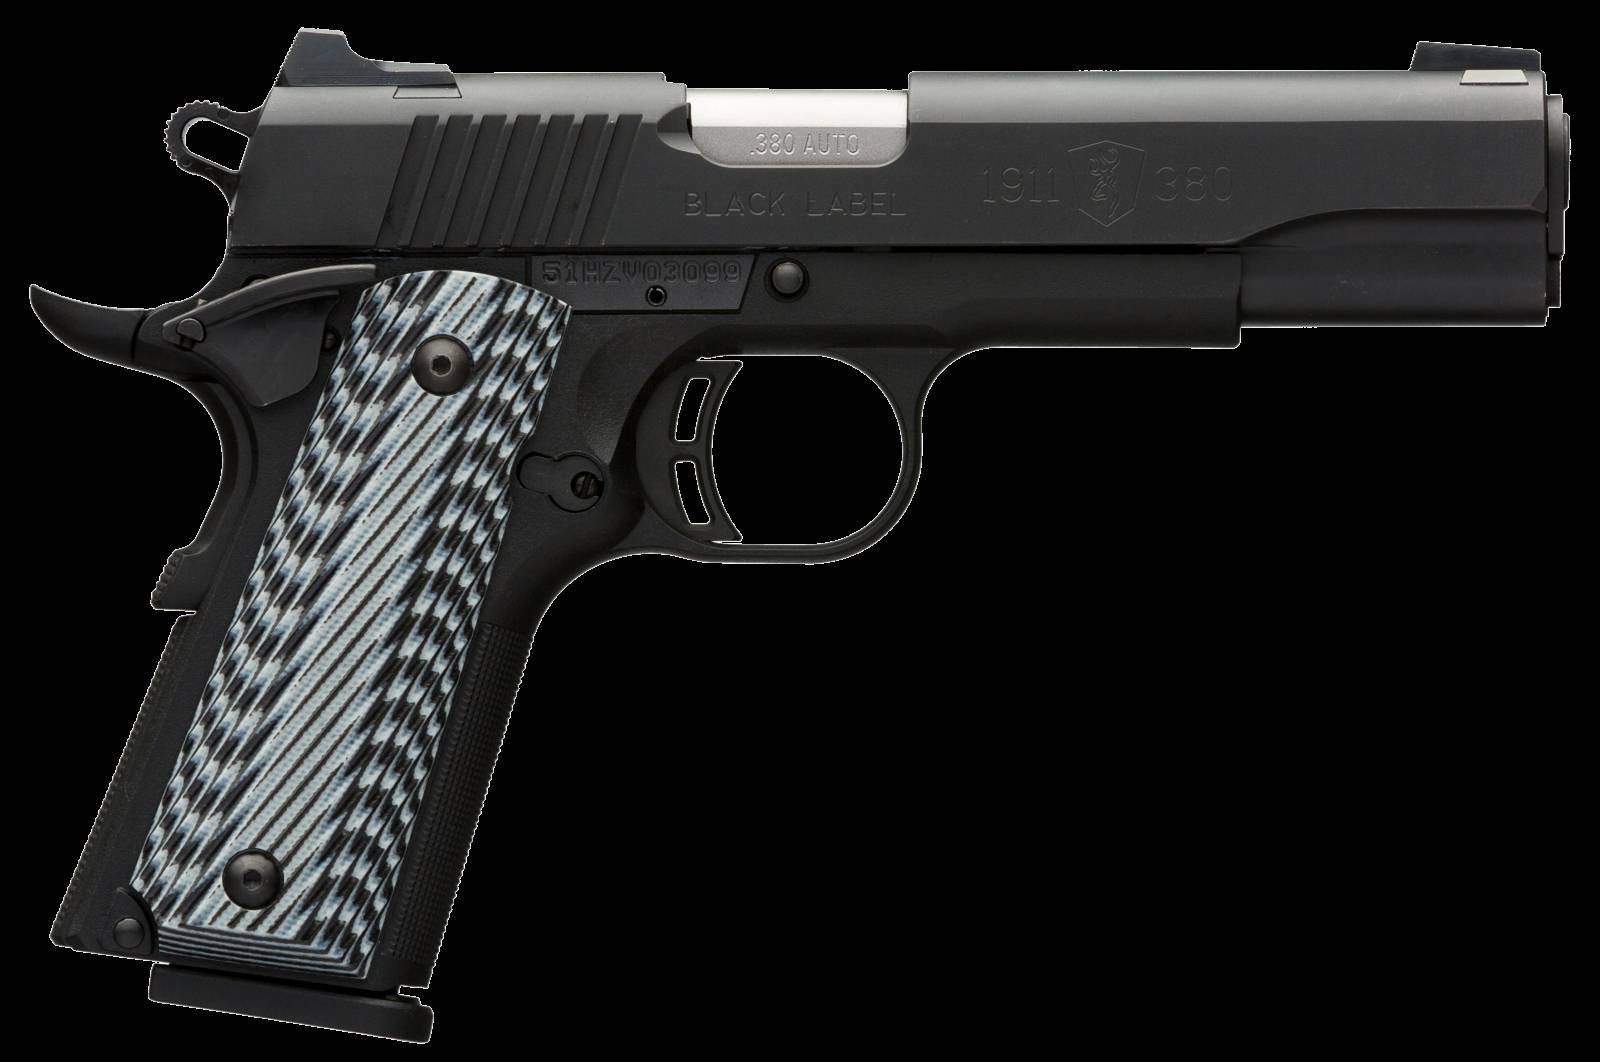 Browning 051900492 1911-380 Black Label Pro Single 380 Automatic Colt Pistol (ACP) 4.25